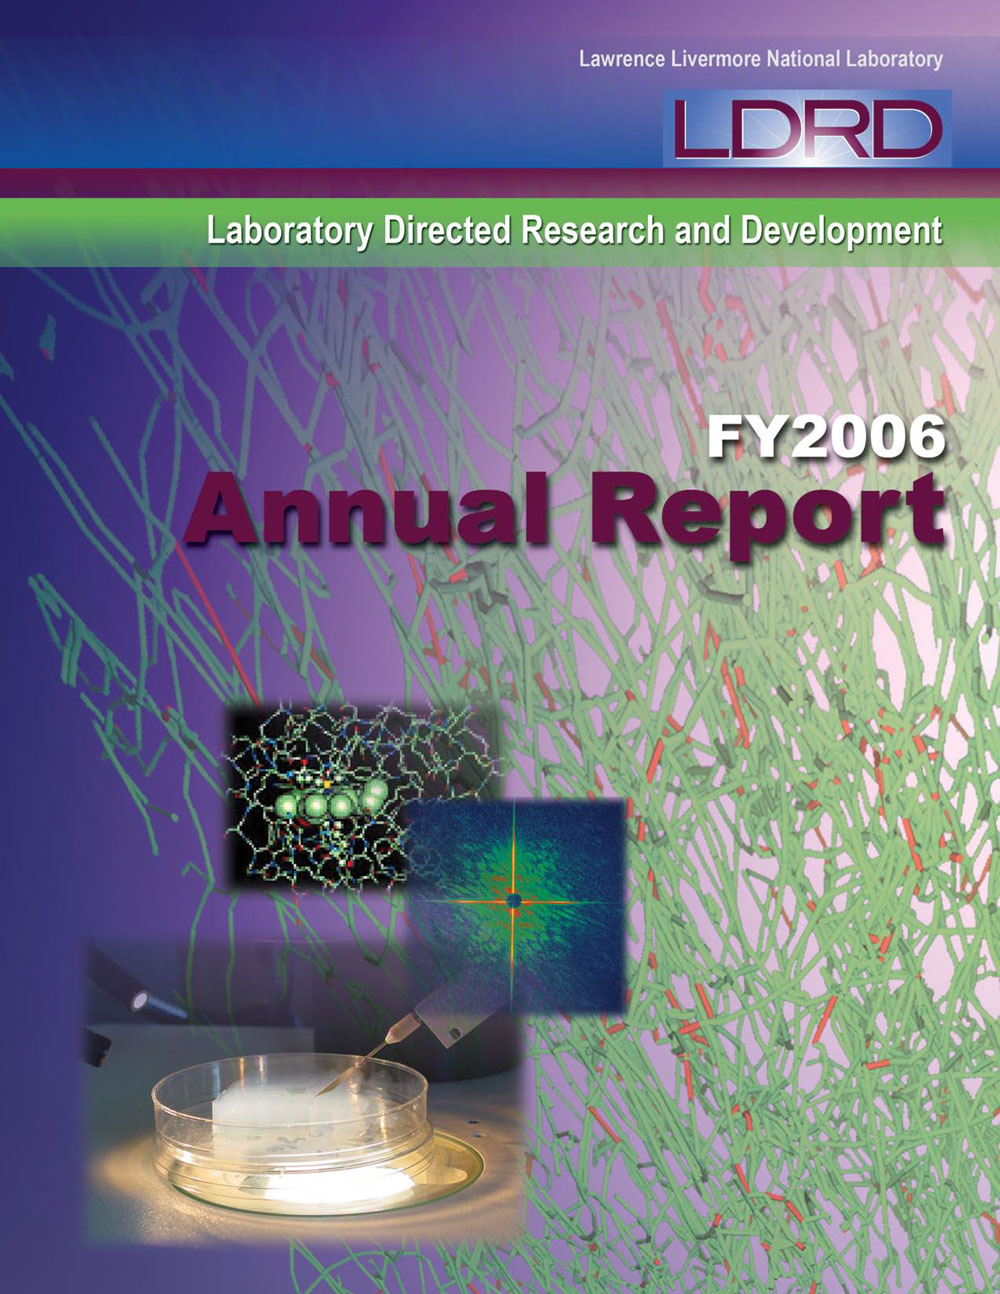 CoverofLLNLFY2006LDRD-AnnualReport